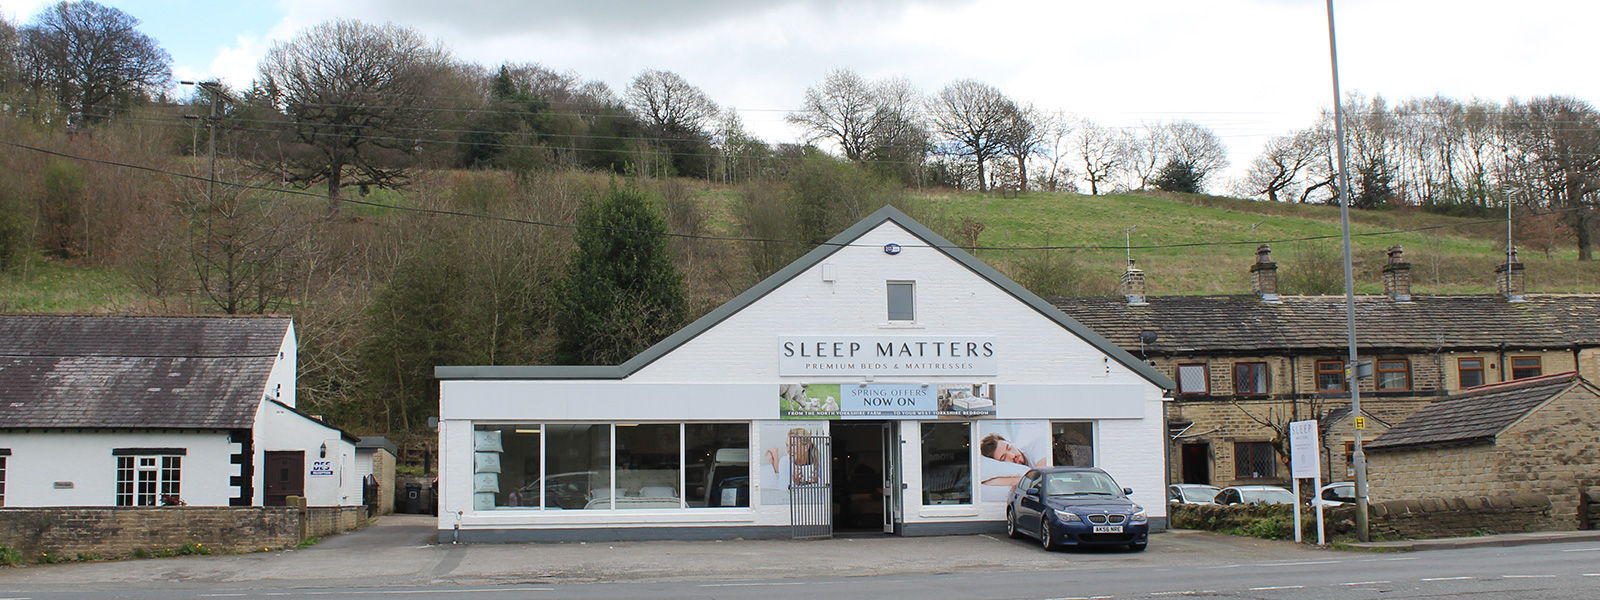 Visit our beautiful Honley showroom located a short distance from Huddersfield, West yorkshire